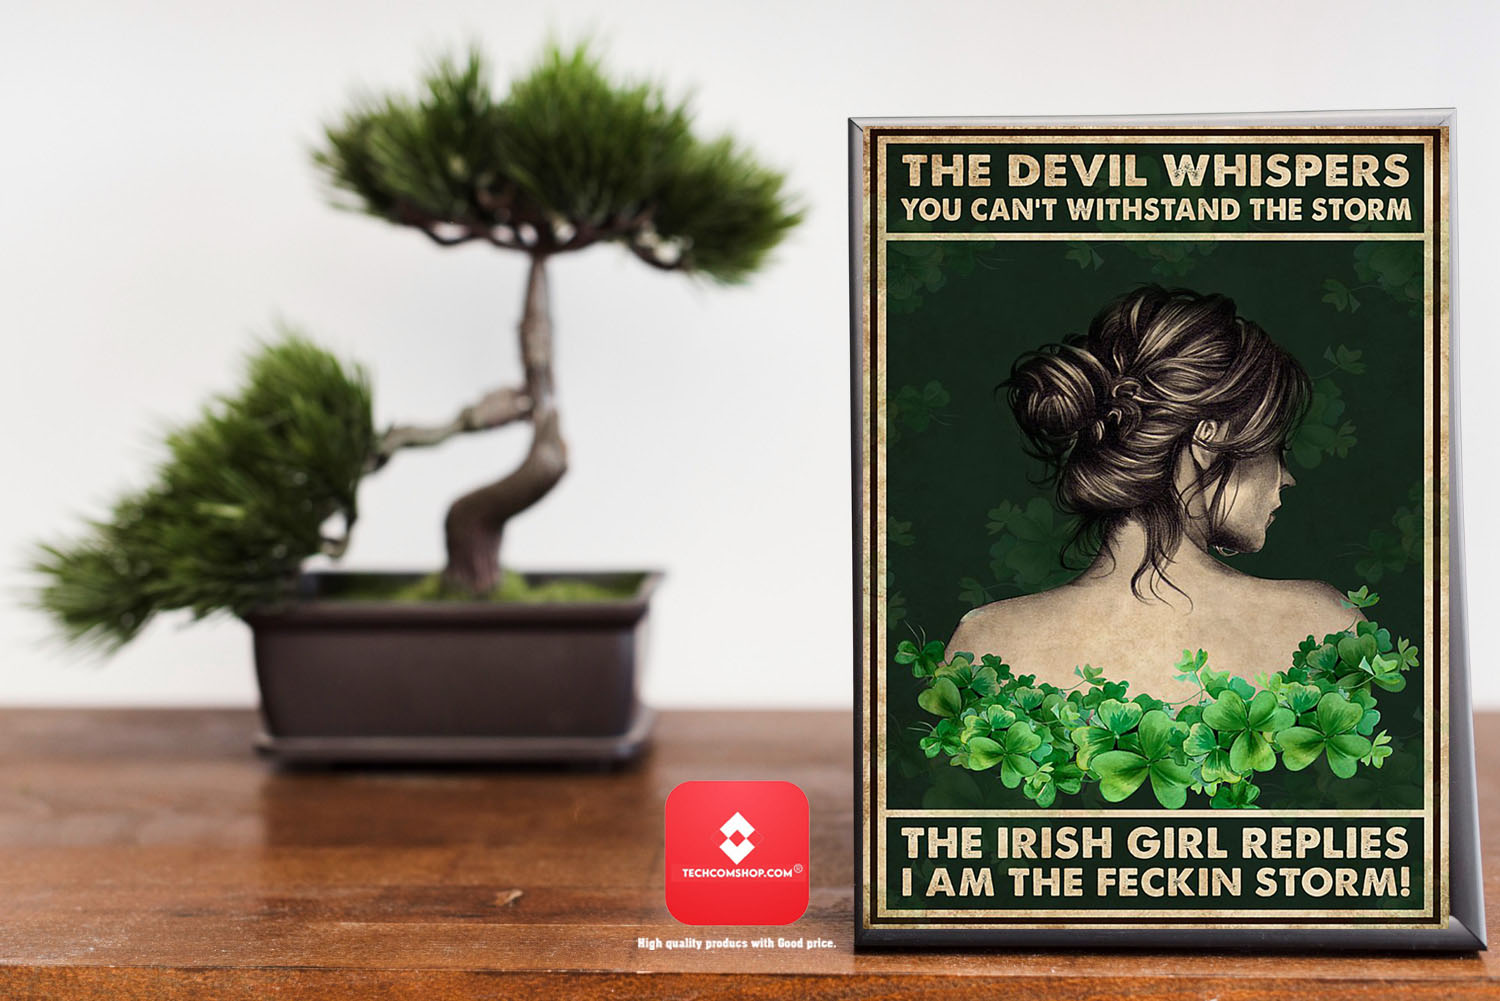 The devil whispers you cannot withstand the storm the irish girl replies I am the feckin strorm poster 7